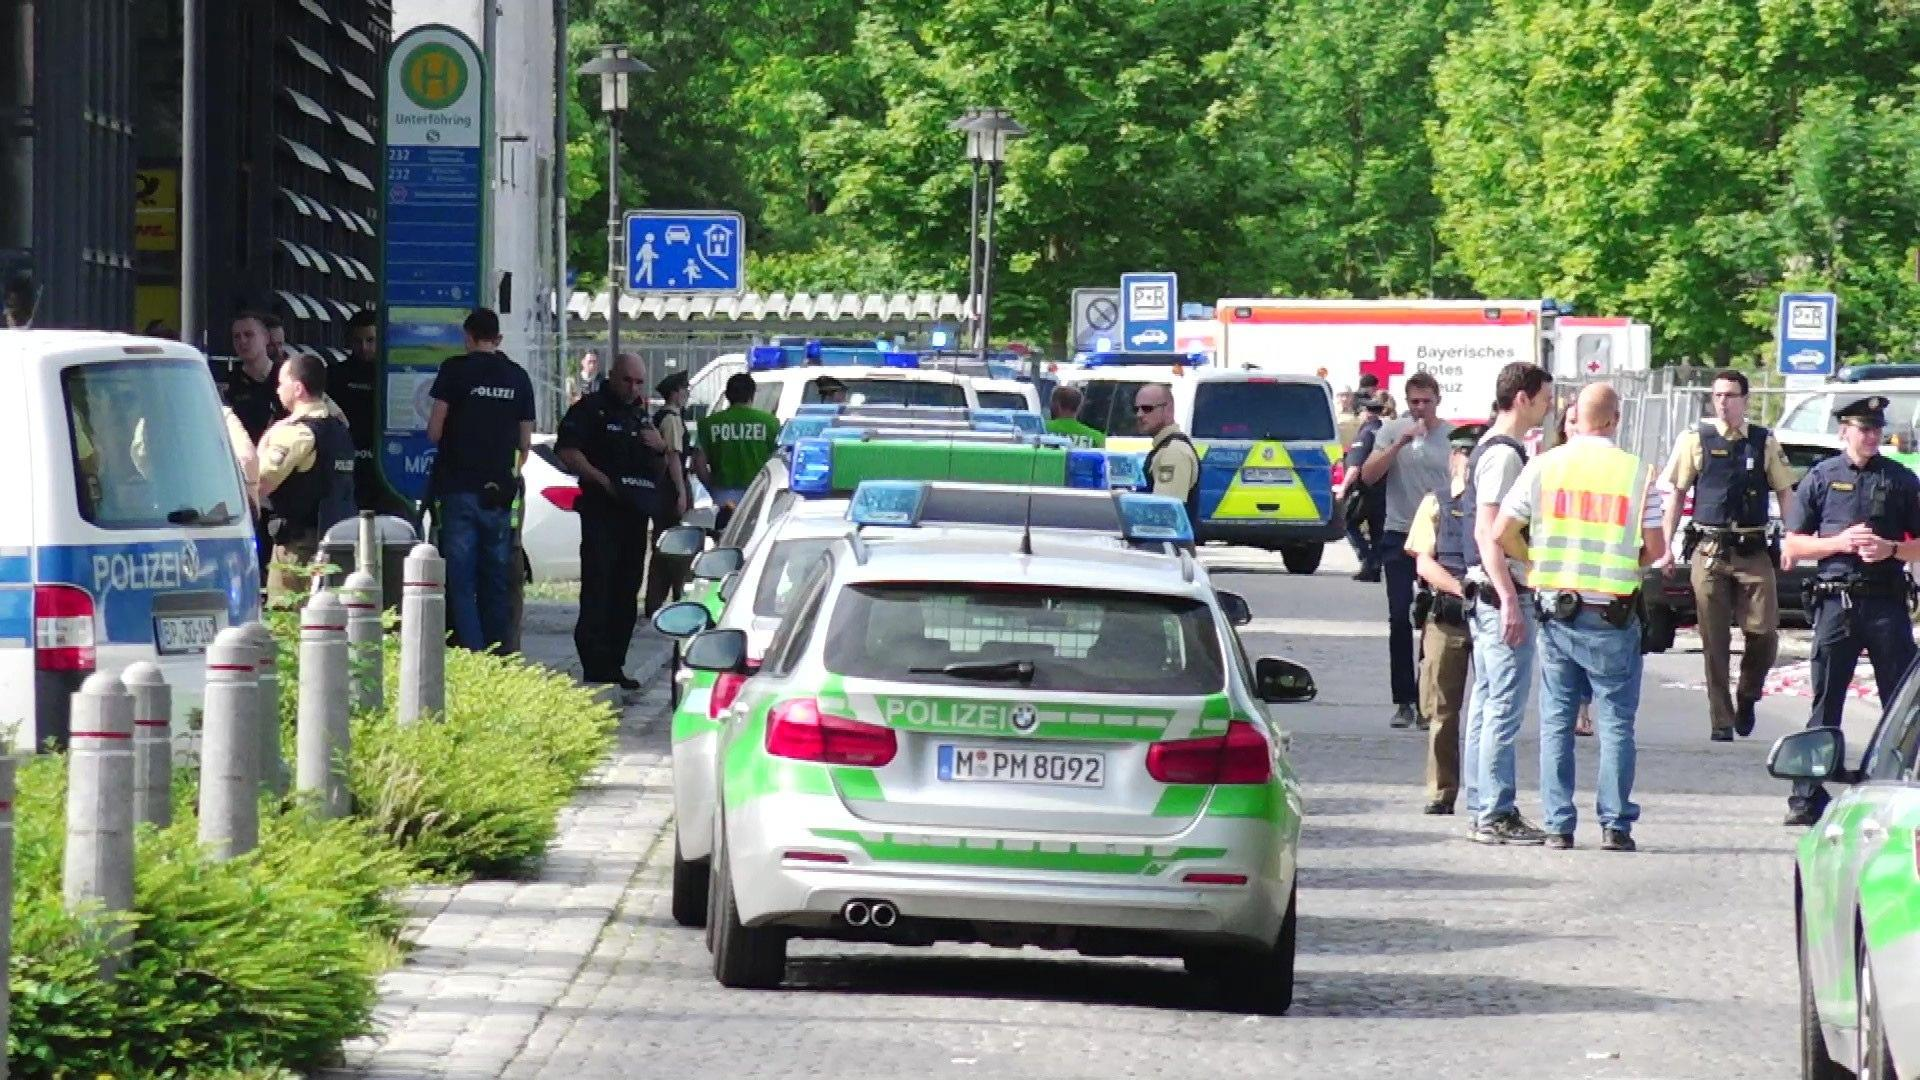 Policewoman injured in a shooting at a Munich subway